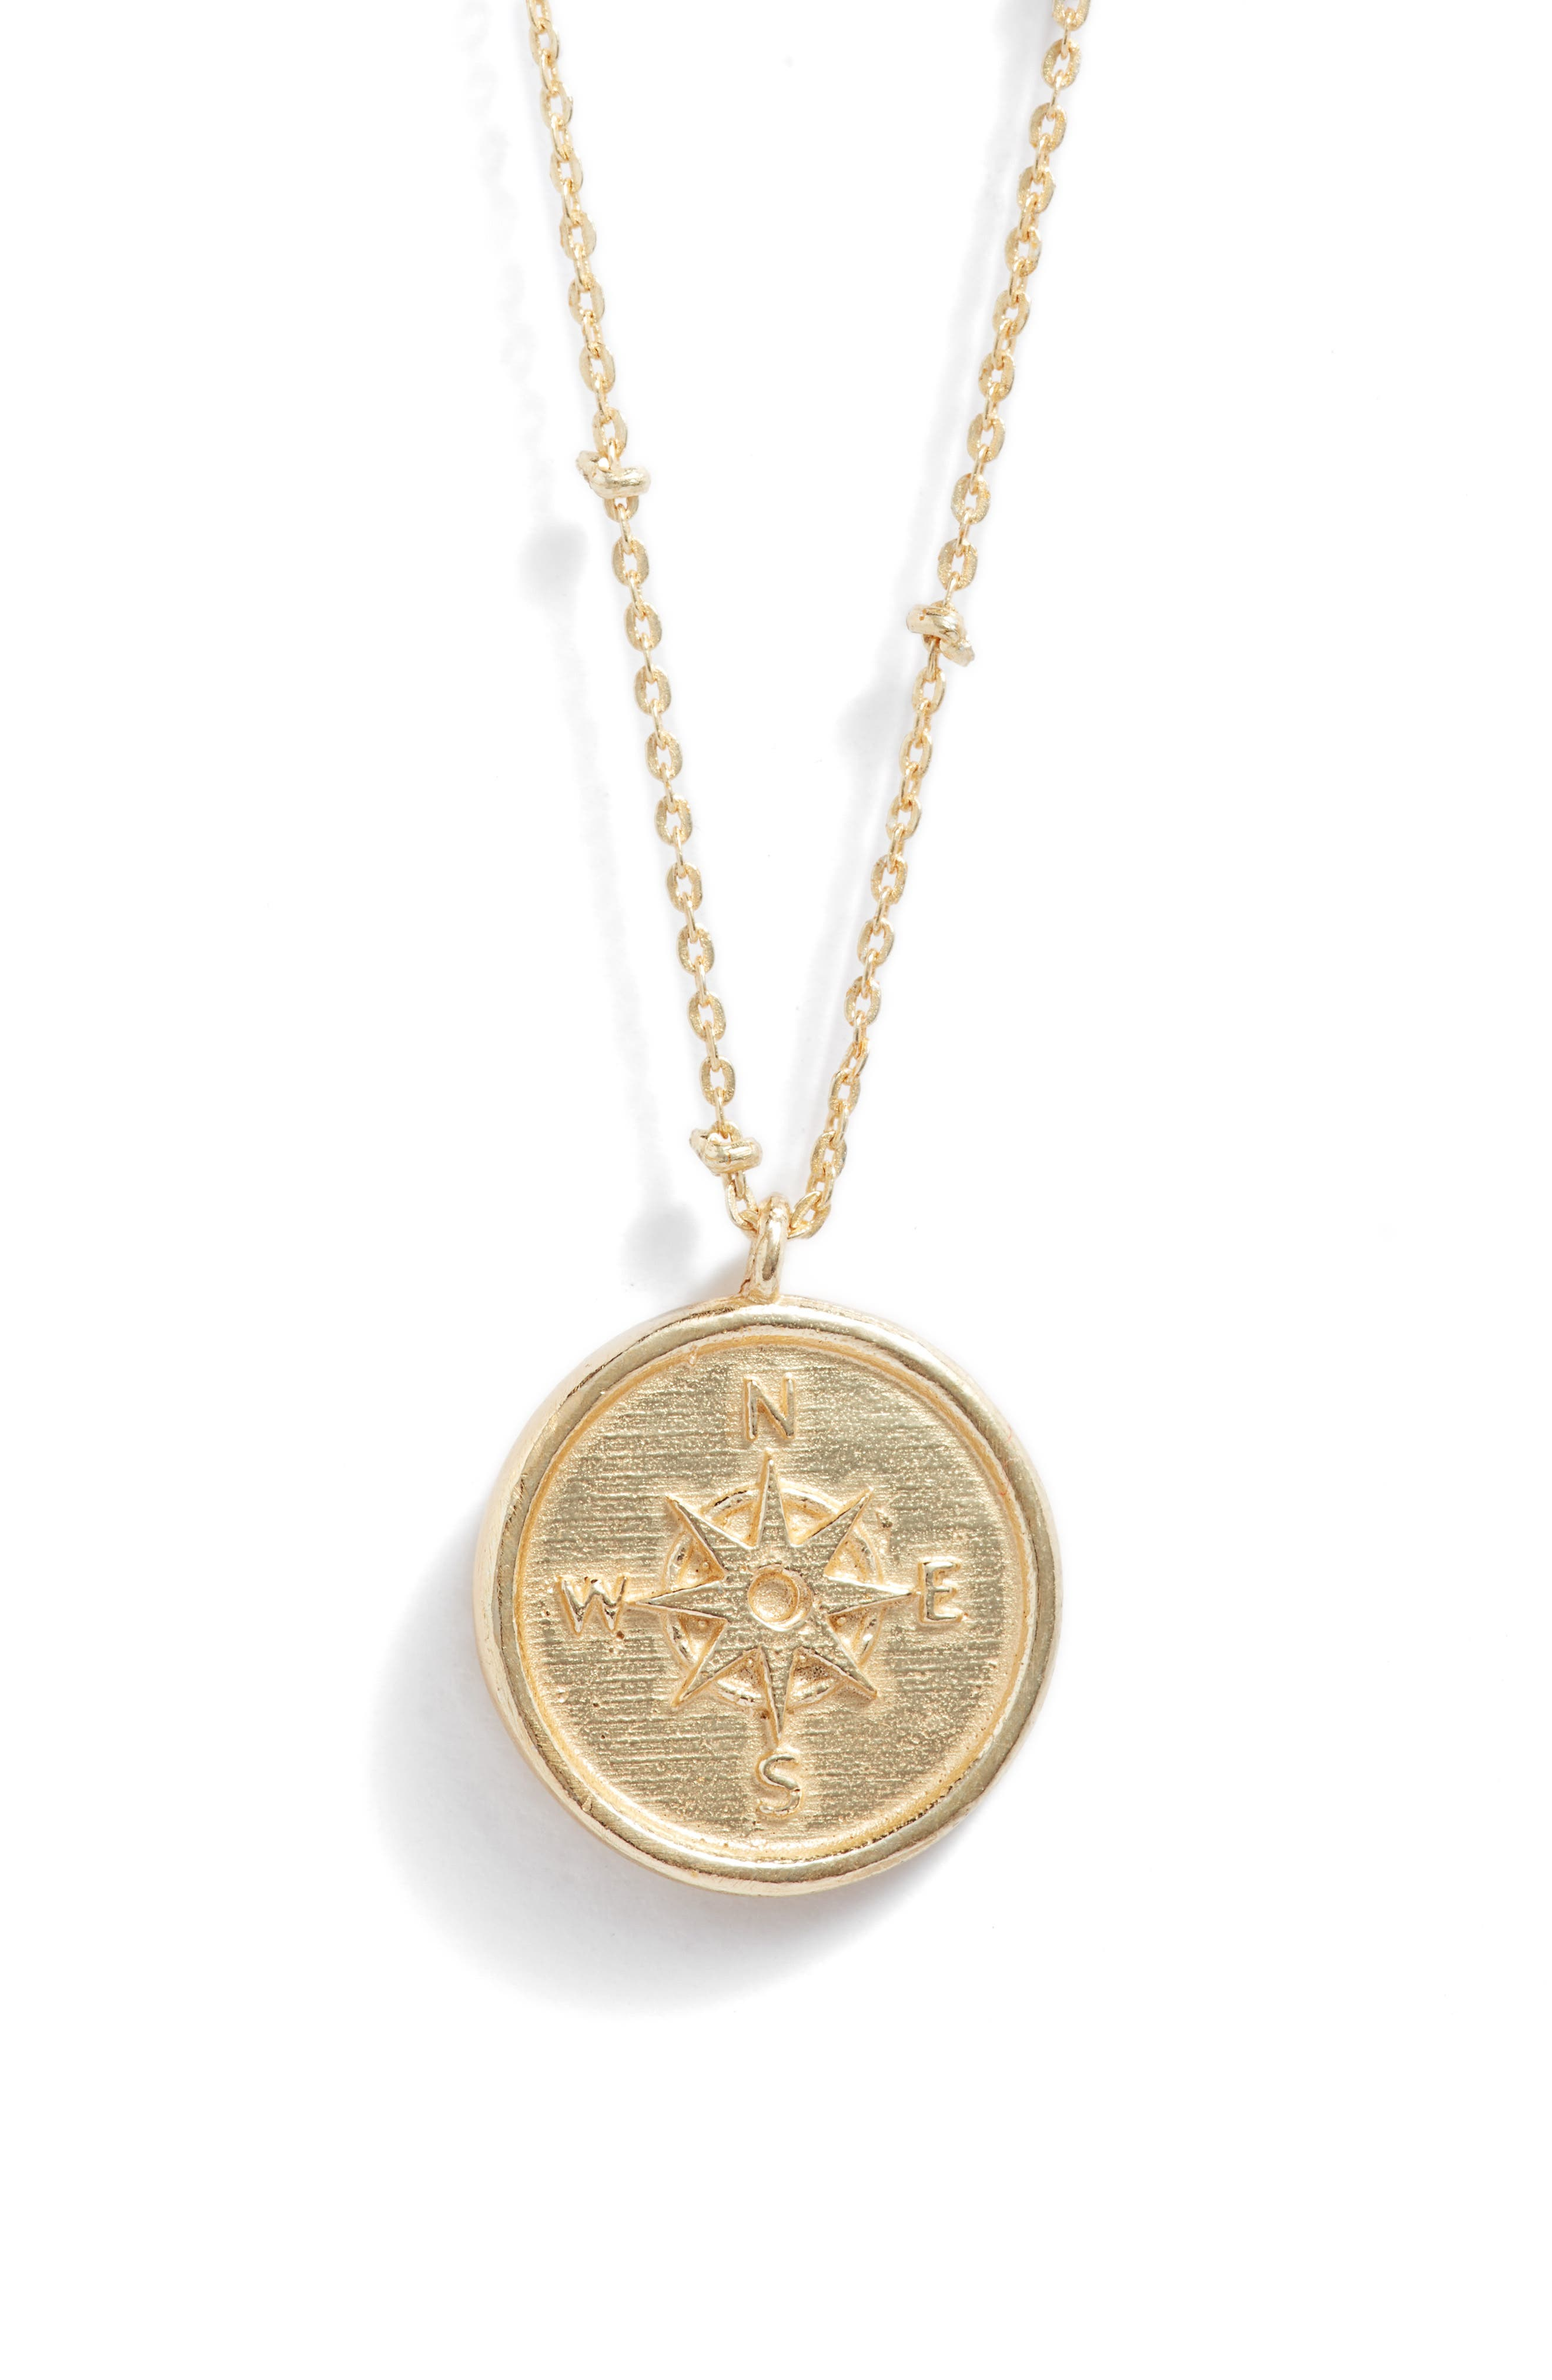 Collections by Joya Sterling Silver Compass Pendant Necklace in Gold at Nordstrom